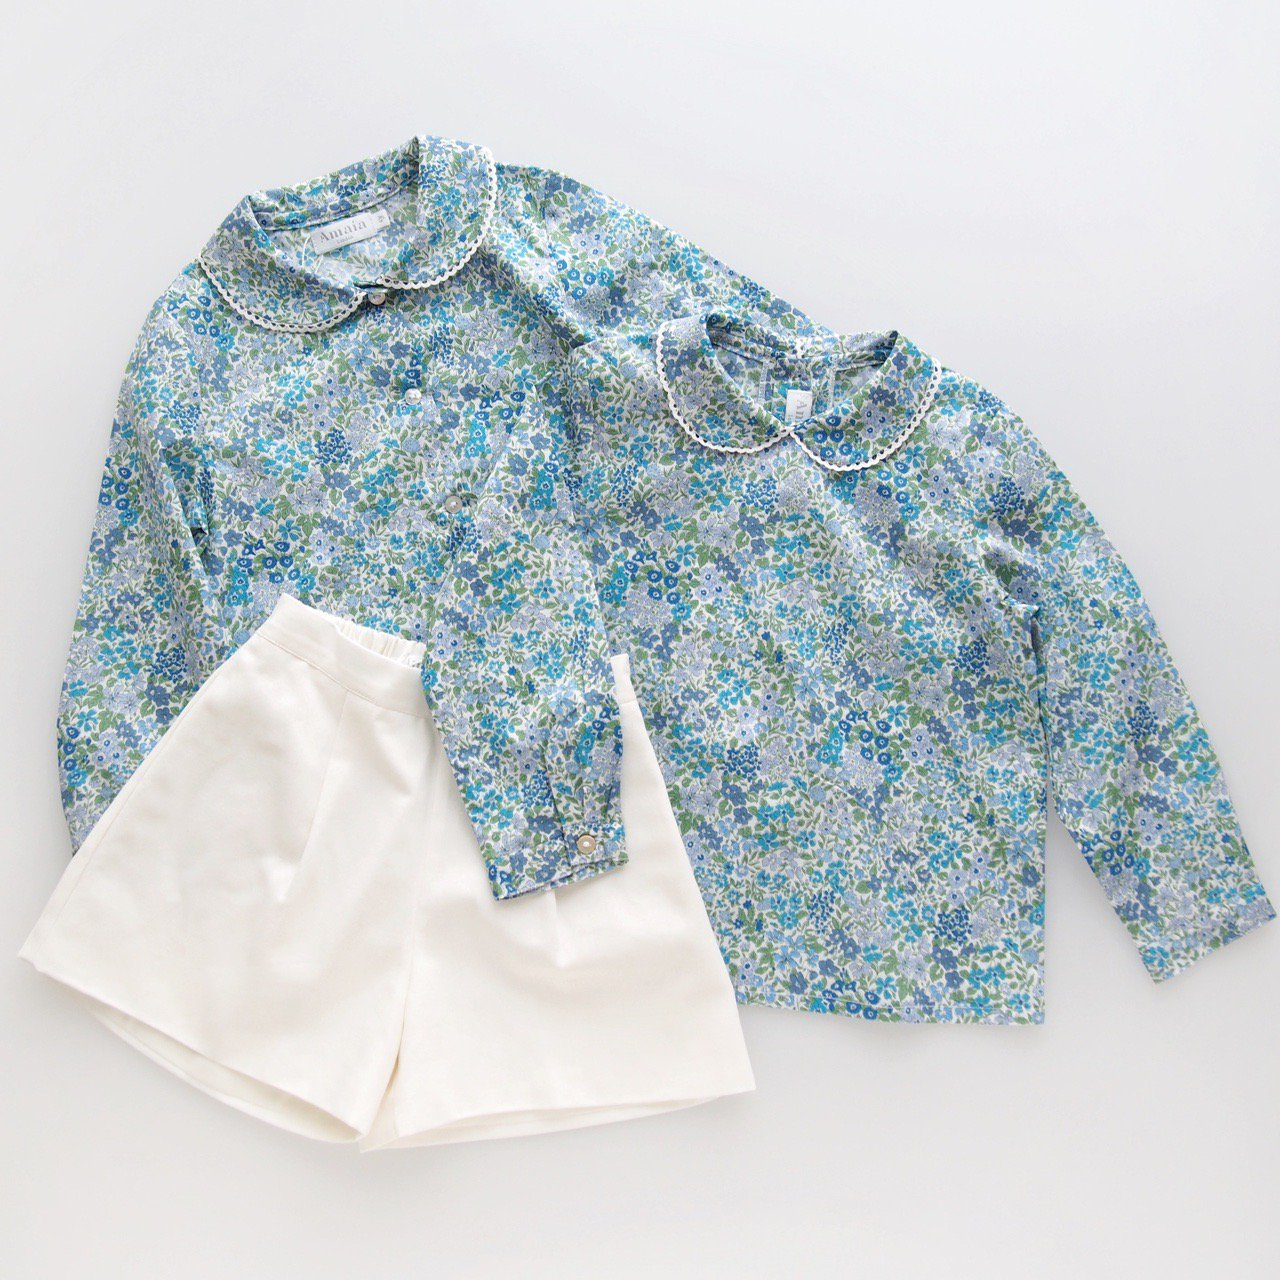 <img class='new_mark_img1' src='https://img.shop-pro.jp/img/new/icons1.gif' style='border:none;display:inline;margin:0px;padding:0px;width:auto;' />Amaia Kids - Coline  blouse (Liberty blue)